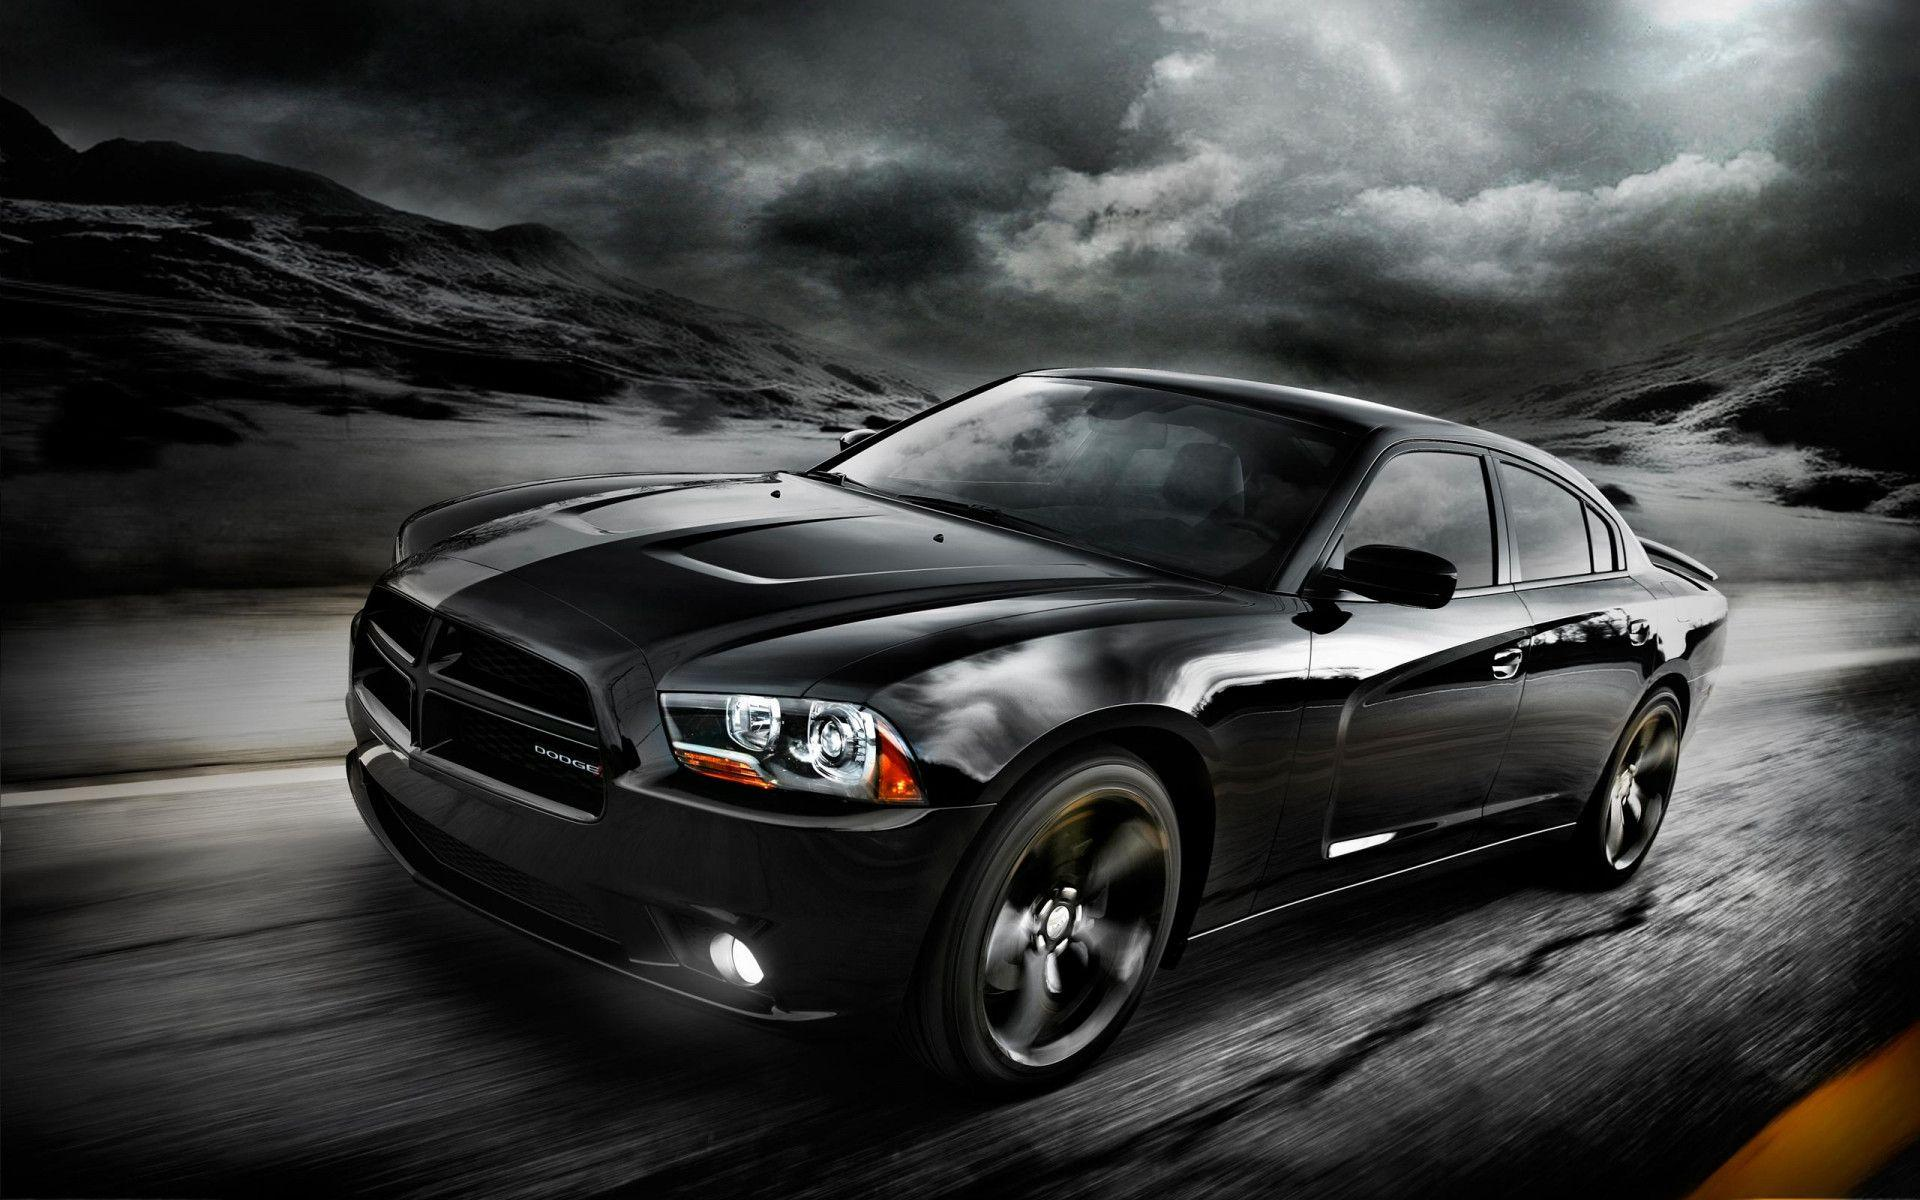 2012 dodge charger blacktop hd wallpapers wallpapers place com